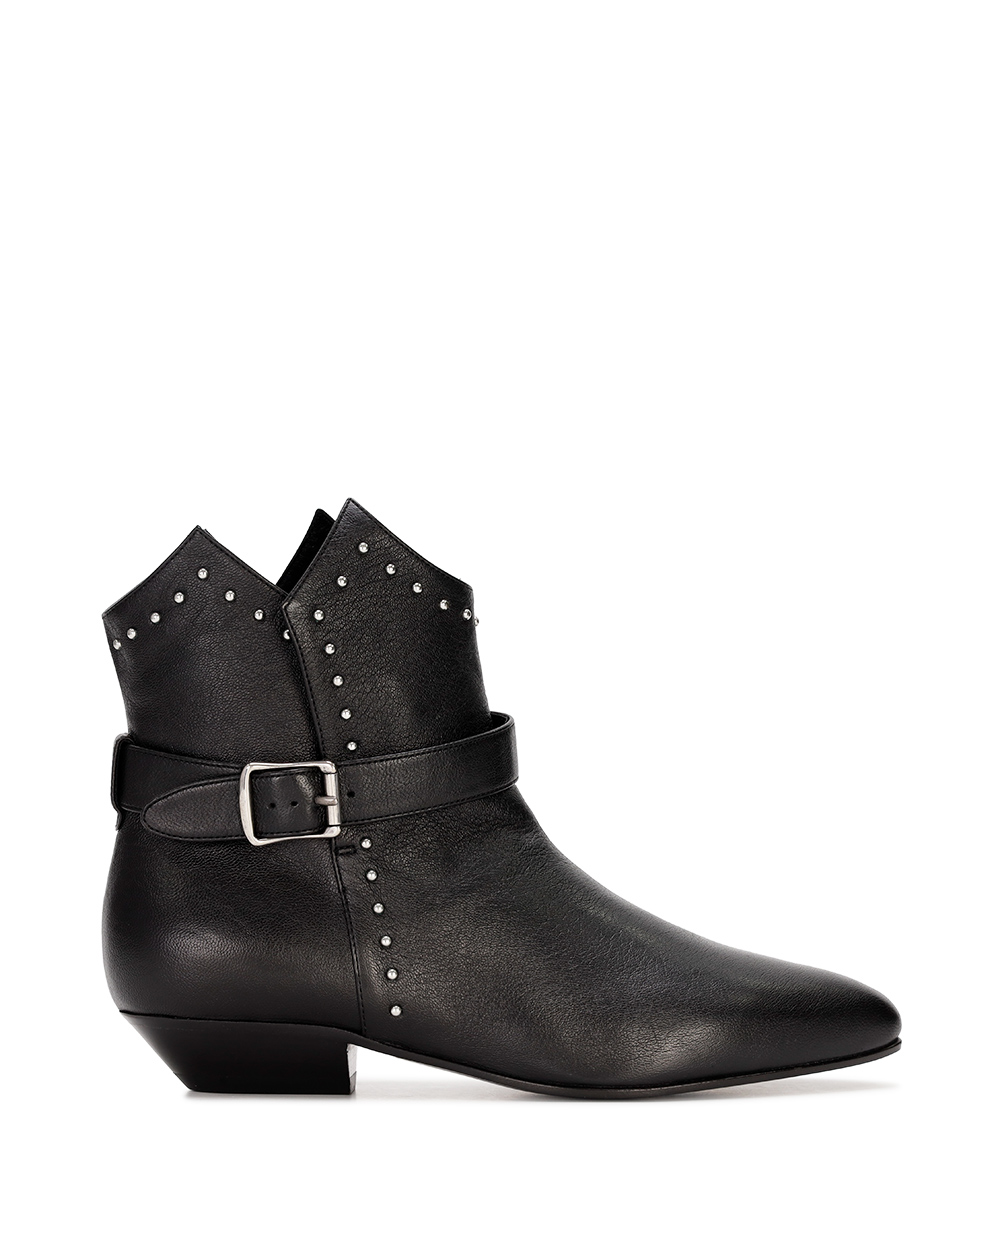 Rivet High Heel Ankle Boots